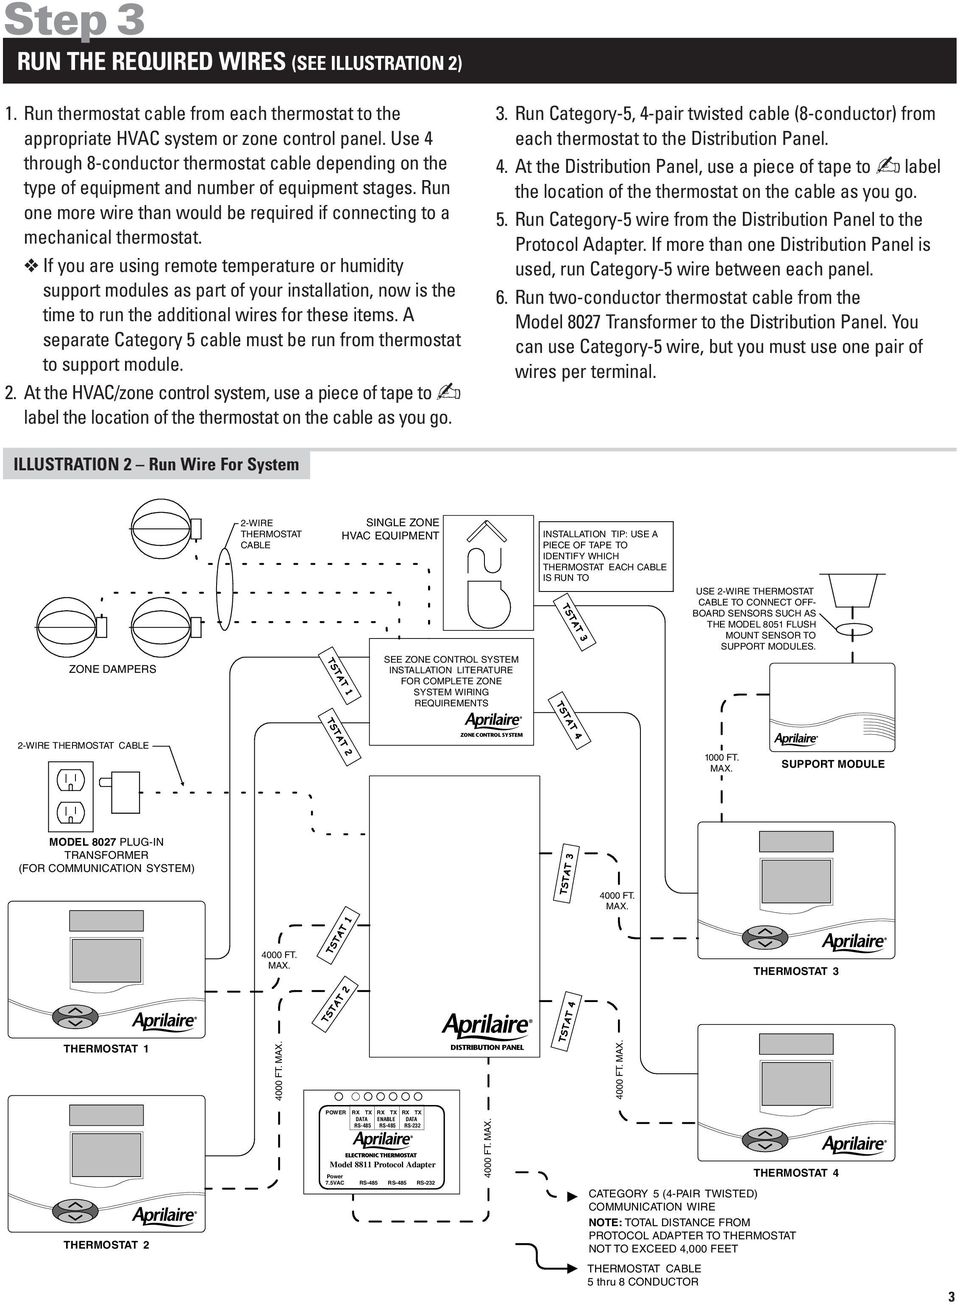 Communicating Thermostat System Installation Manual Pdf Aprilaire Wiring Diagram If You Are Using Remote Temperature Or Humidity Support Modules As Part Of Your